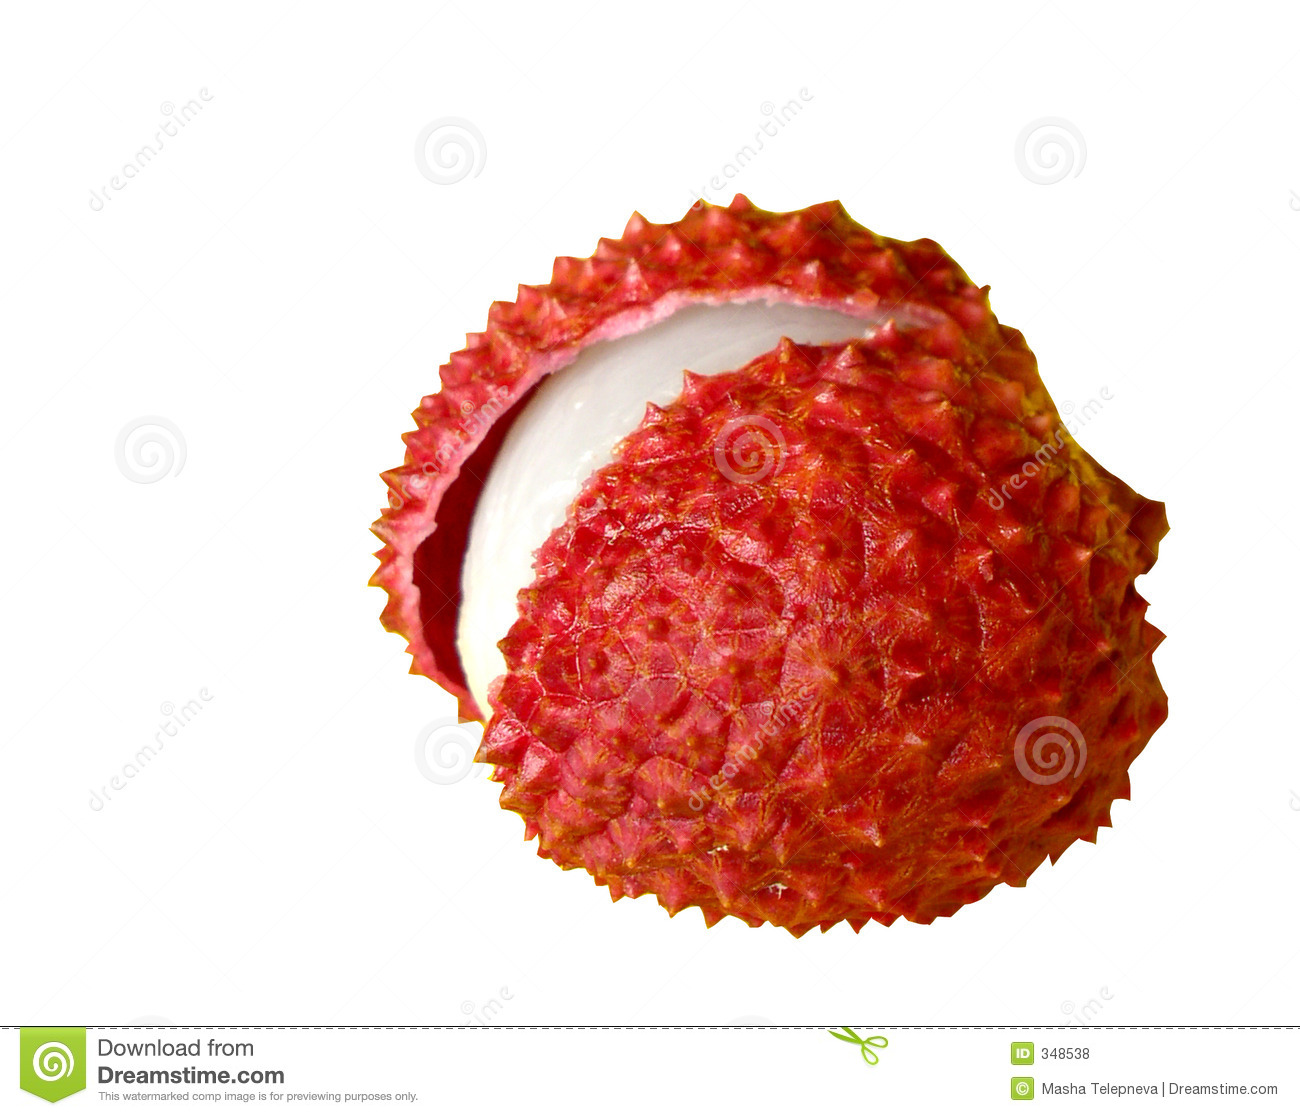 Royalty Free Stock Photos Litchi Chinensis Lychee Image348538 on Sounds Of Farm Animals